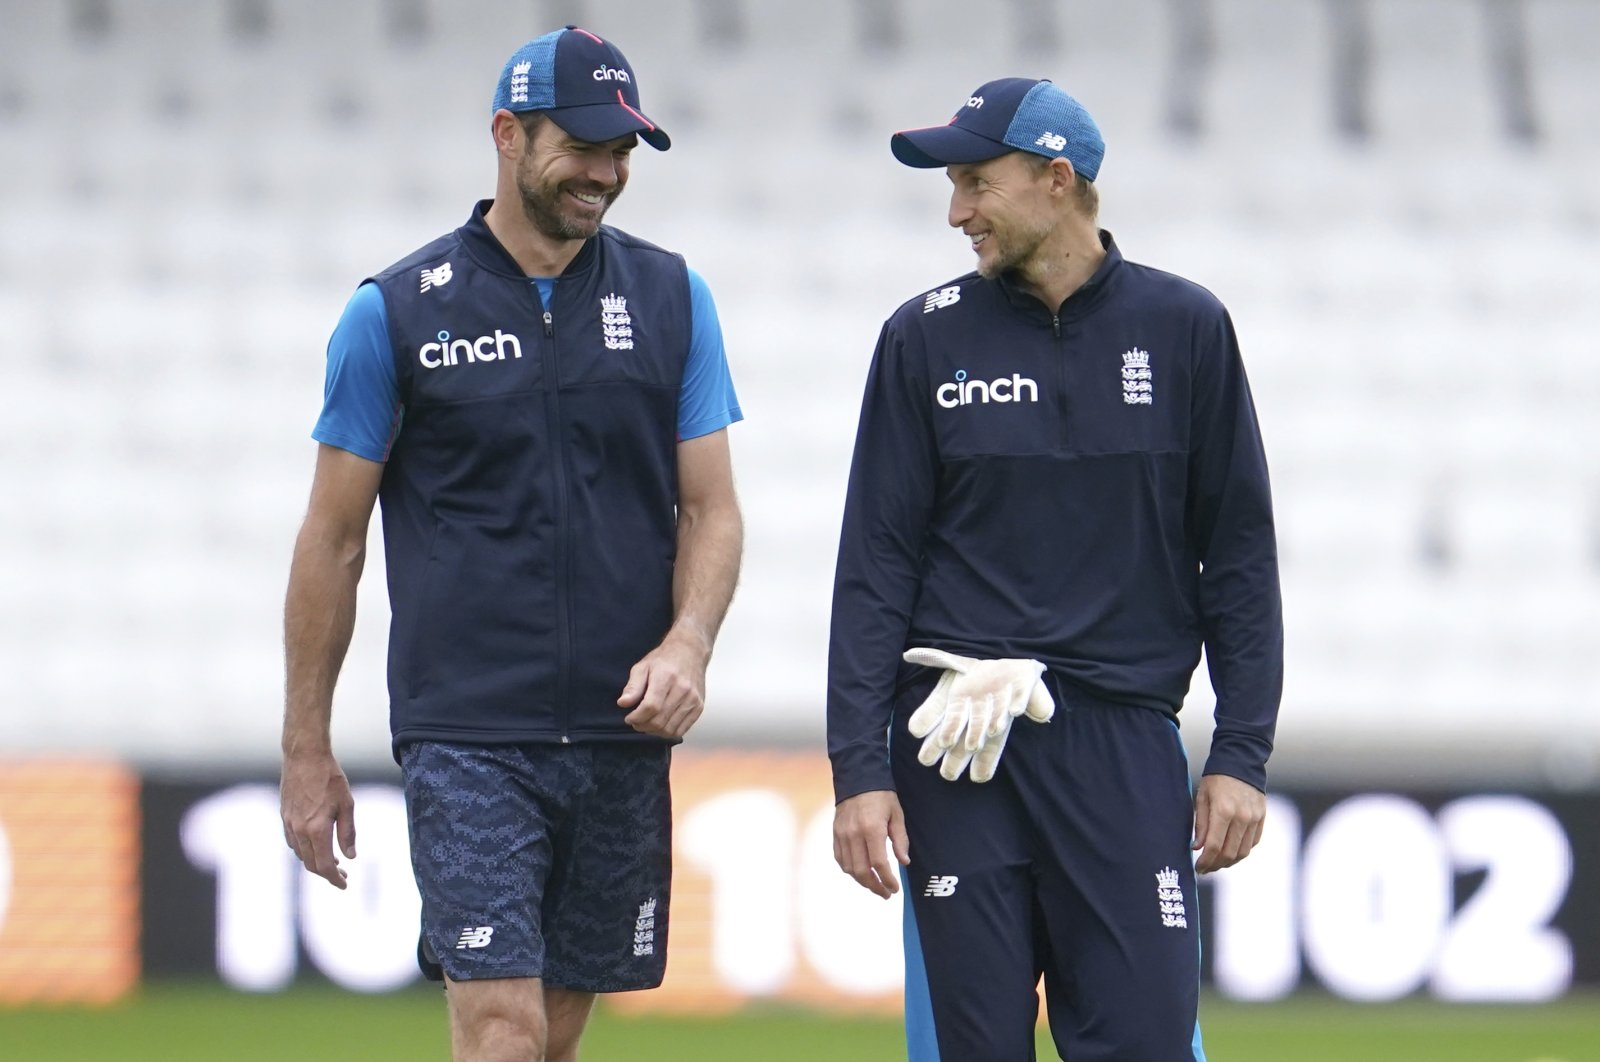 England's Joe Root (R) and James Anderson during a nets session before the 3rd Test against India at Headingley cricket ground, Leeds, England, Aug. 24, 2021. (AP Photo)